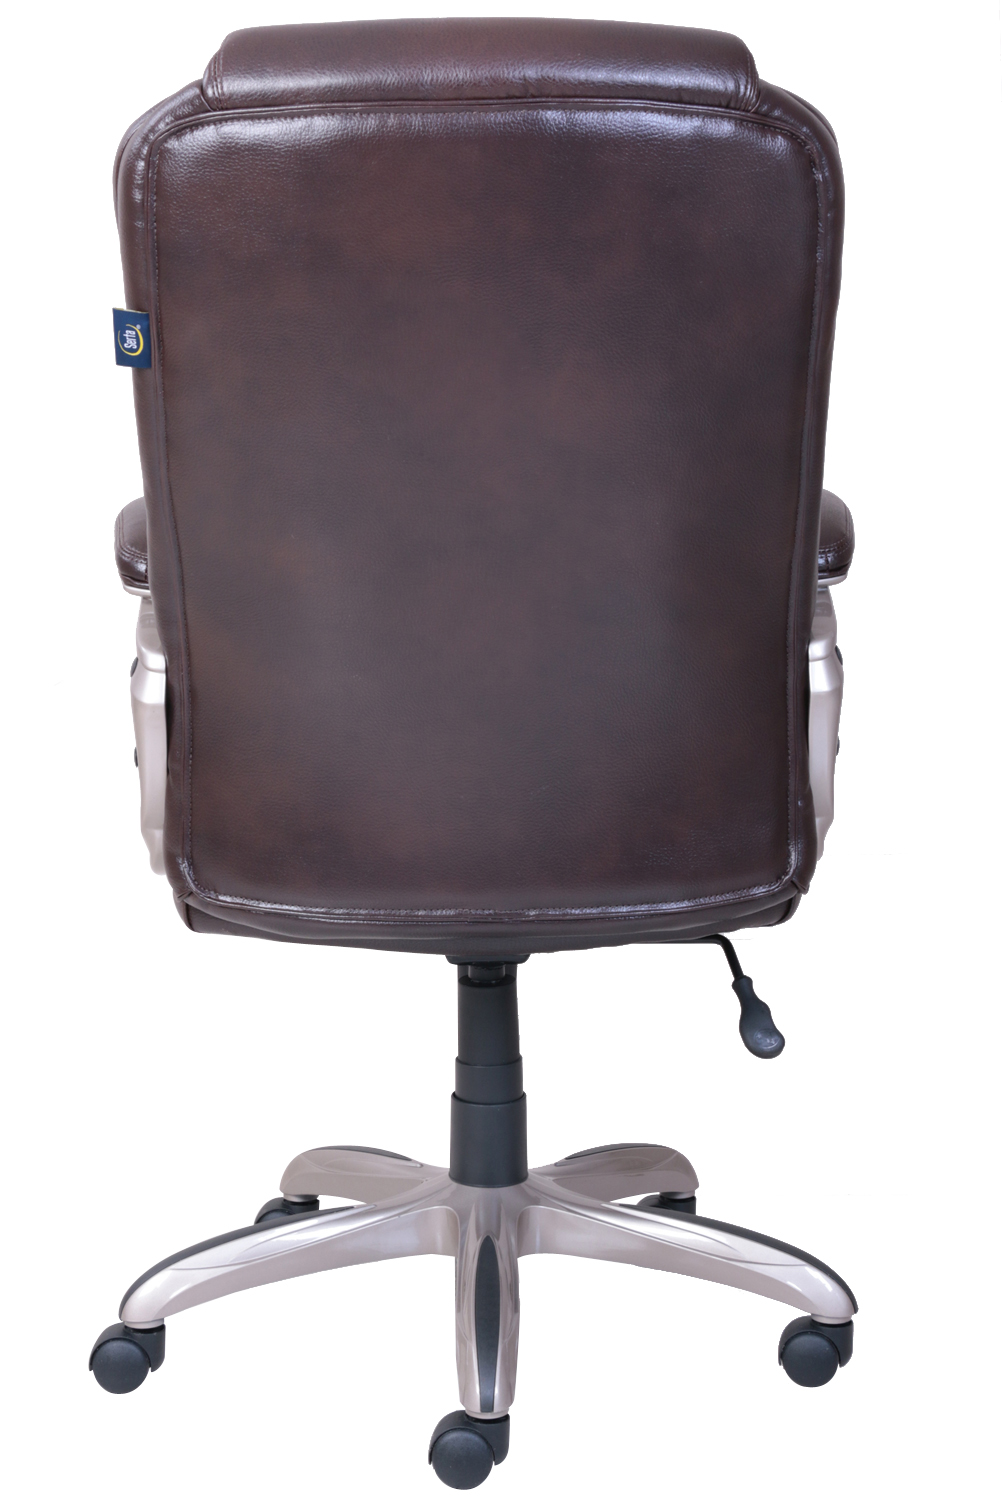 Lovely Serta Big U0026 Tall Commercial Office Chair With Memory Foam, Multiple Colors    Walmart.com